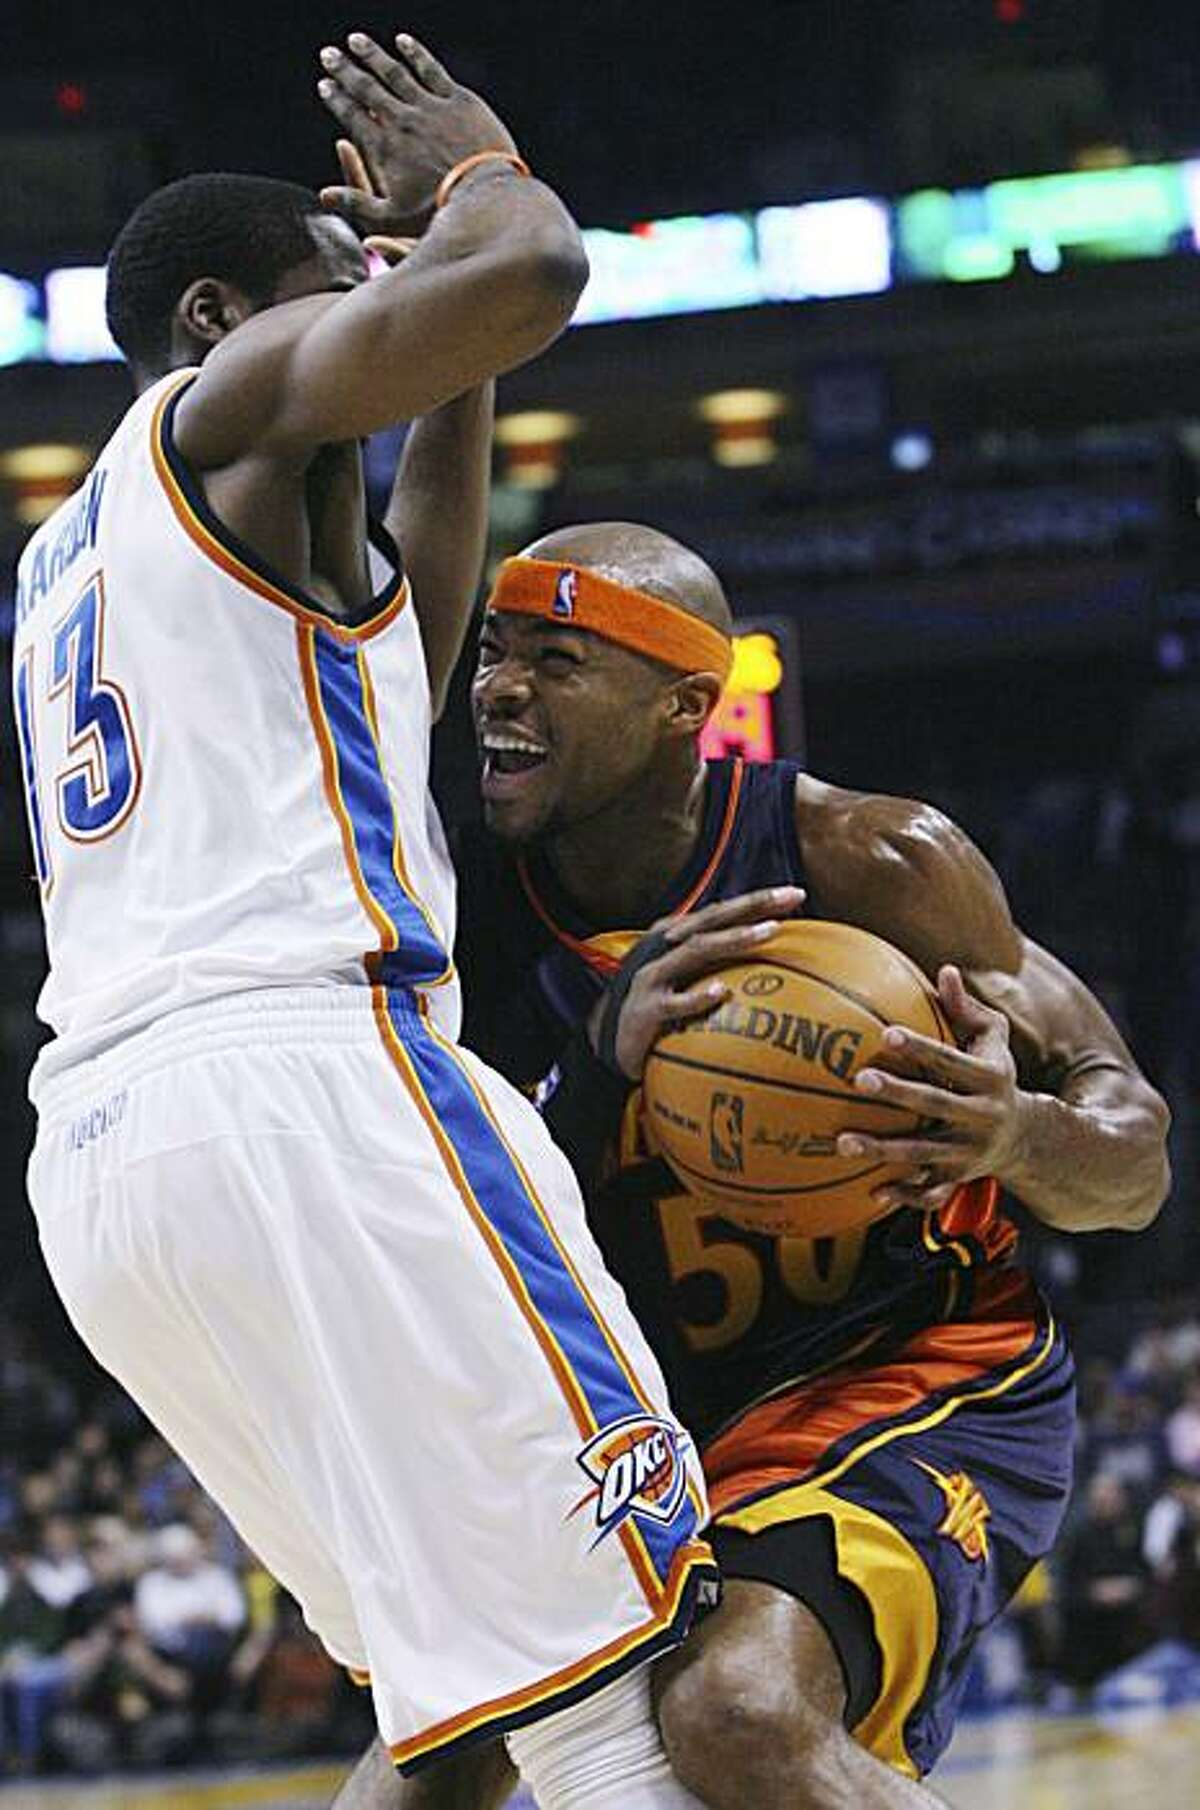 Golden State forward Corey Maggette, right, is fouled by Oklahoma City Thunder guard James Harden, left, in the first quarter of an NBA basketball game in Oklahoma City, Sunday, Jan. 31, 2010.